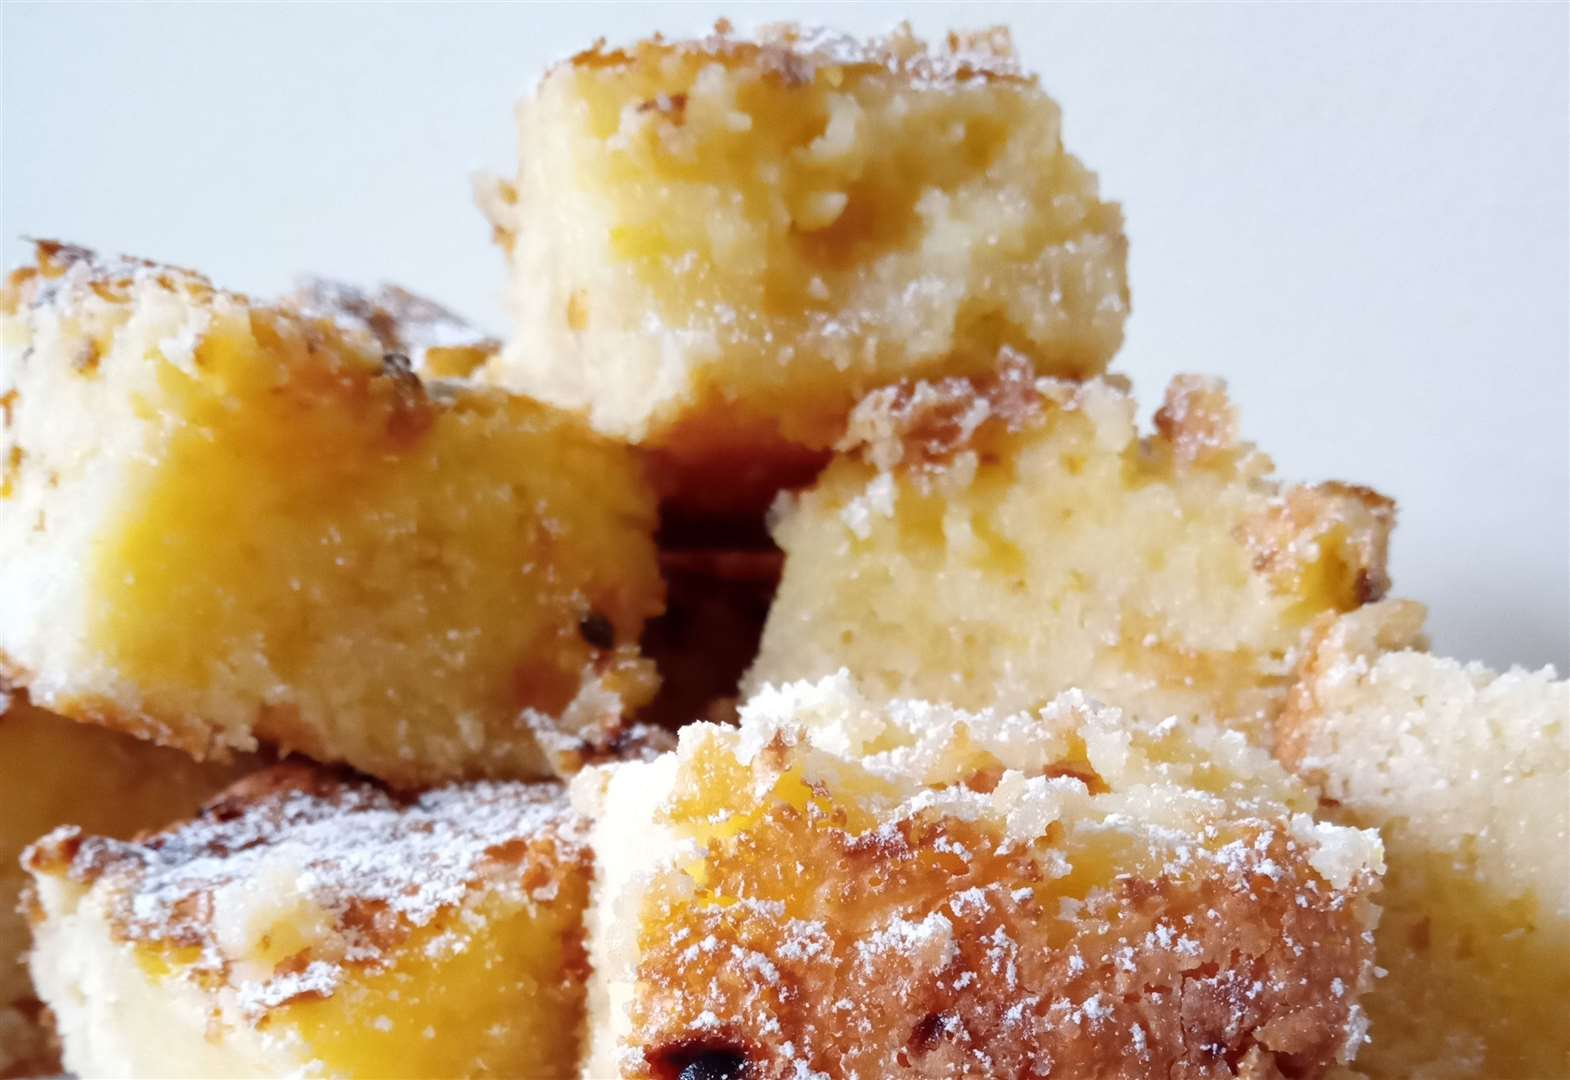 Culture: After the year we have all lived through, food writer Nicola Miller says we should seek out pleasure, and delivers a large slice of pure hedonism with her recipe for a gooey butter cake